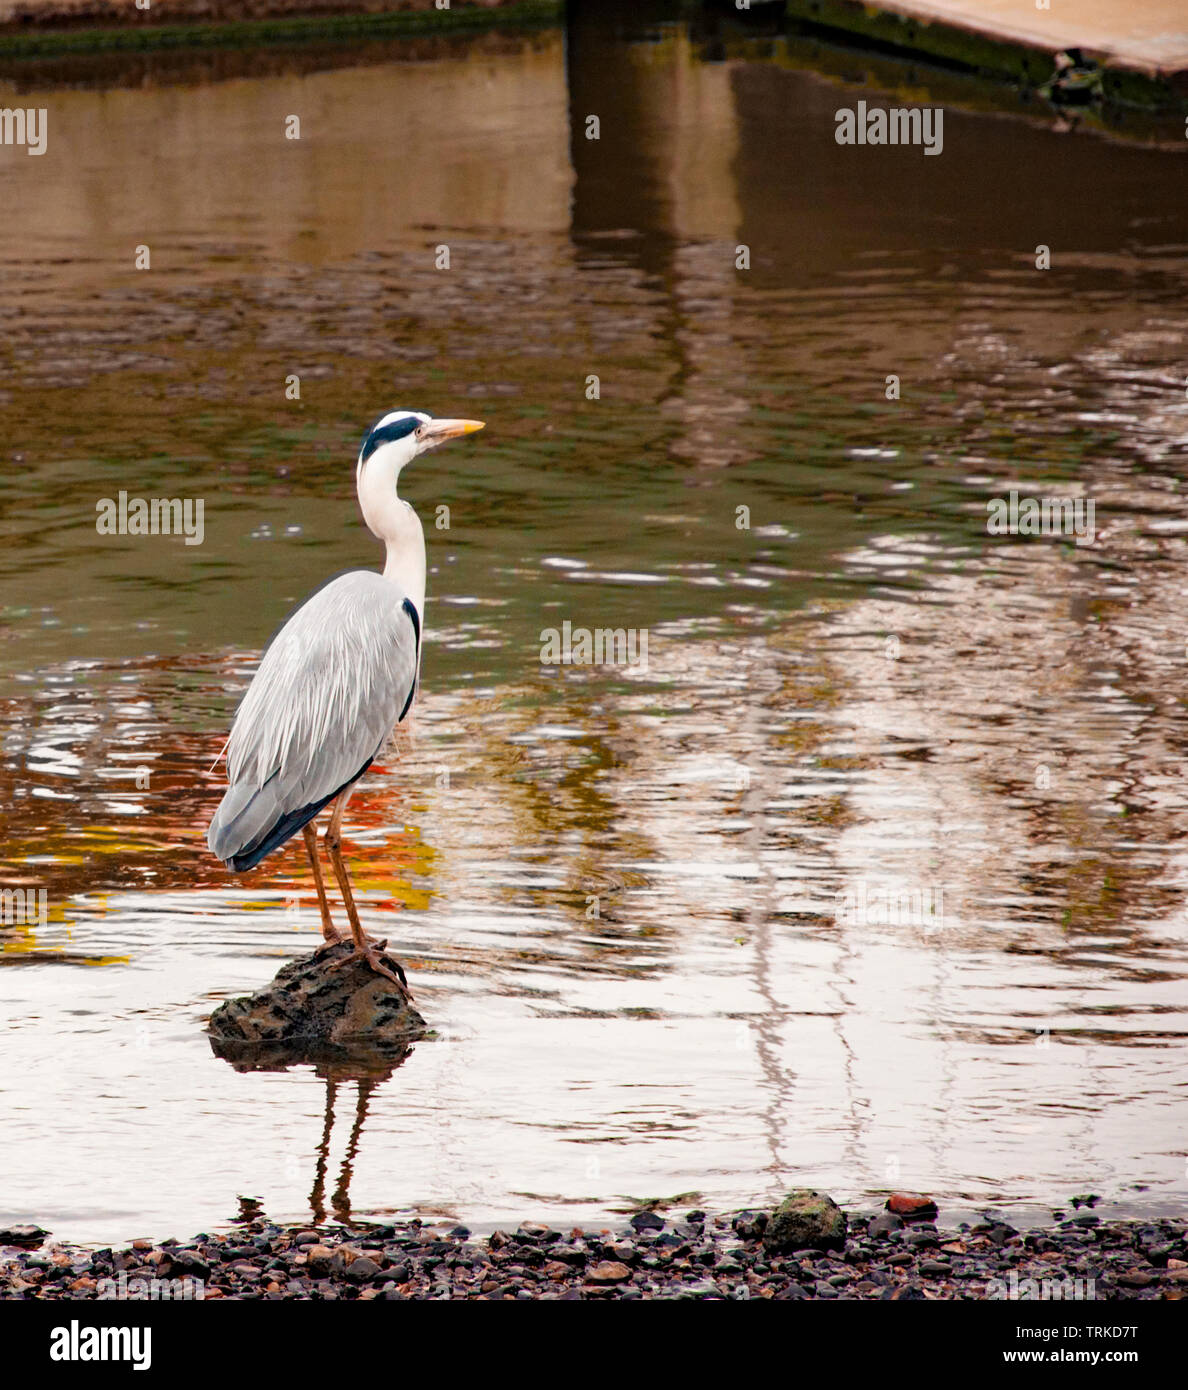 Heron  on the River thames, London - Stock Image